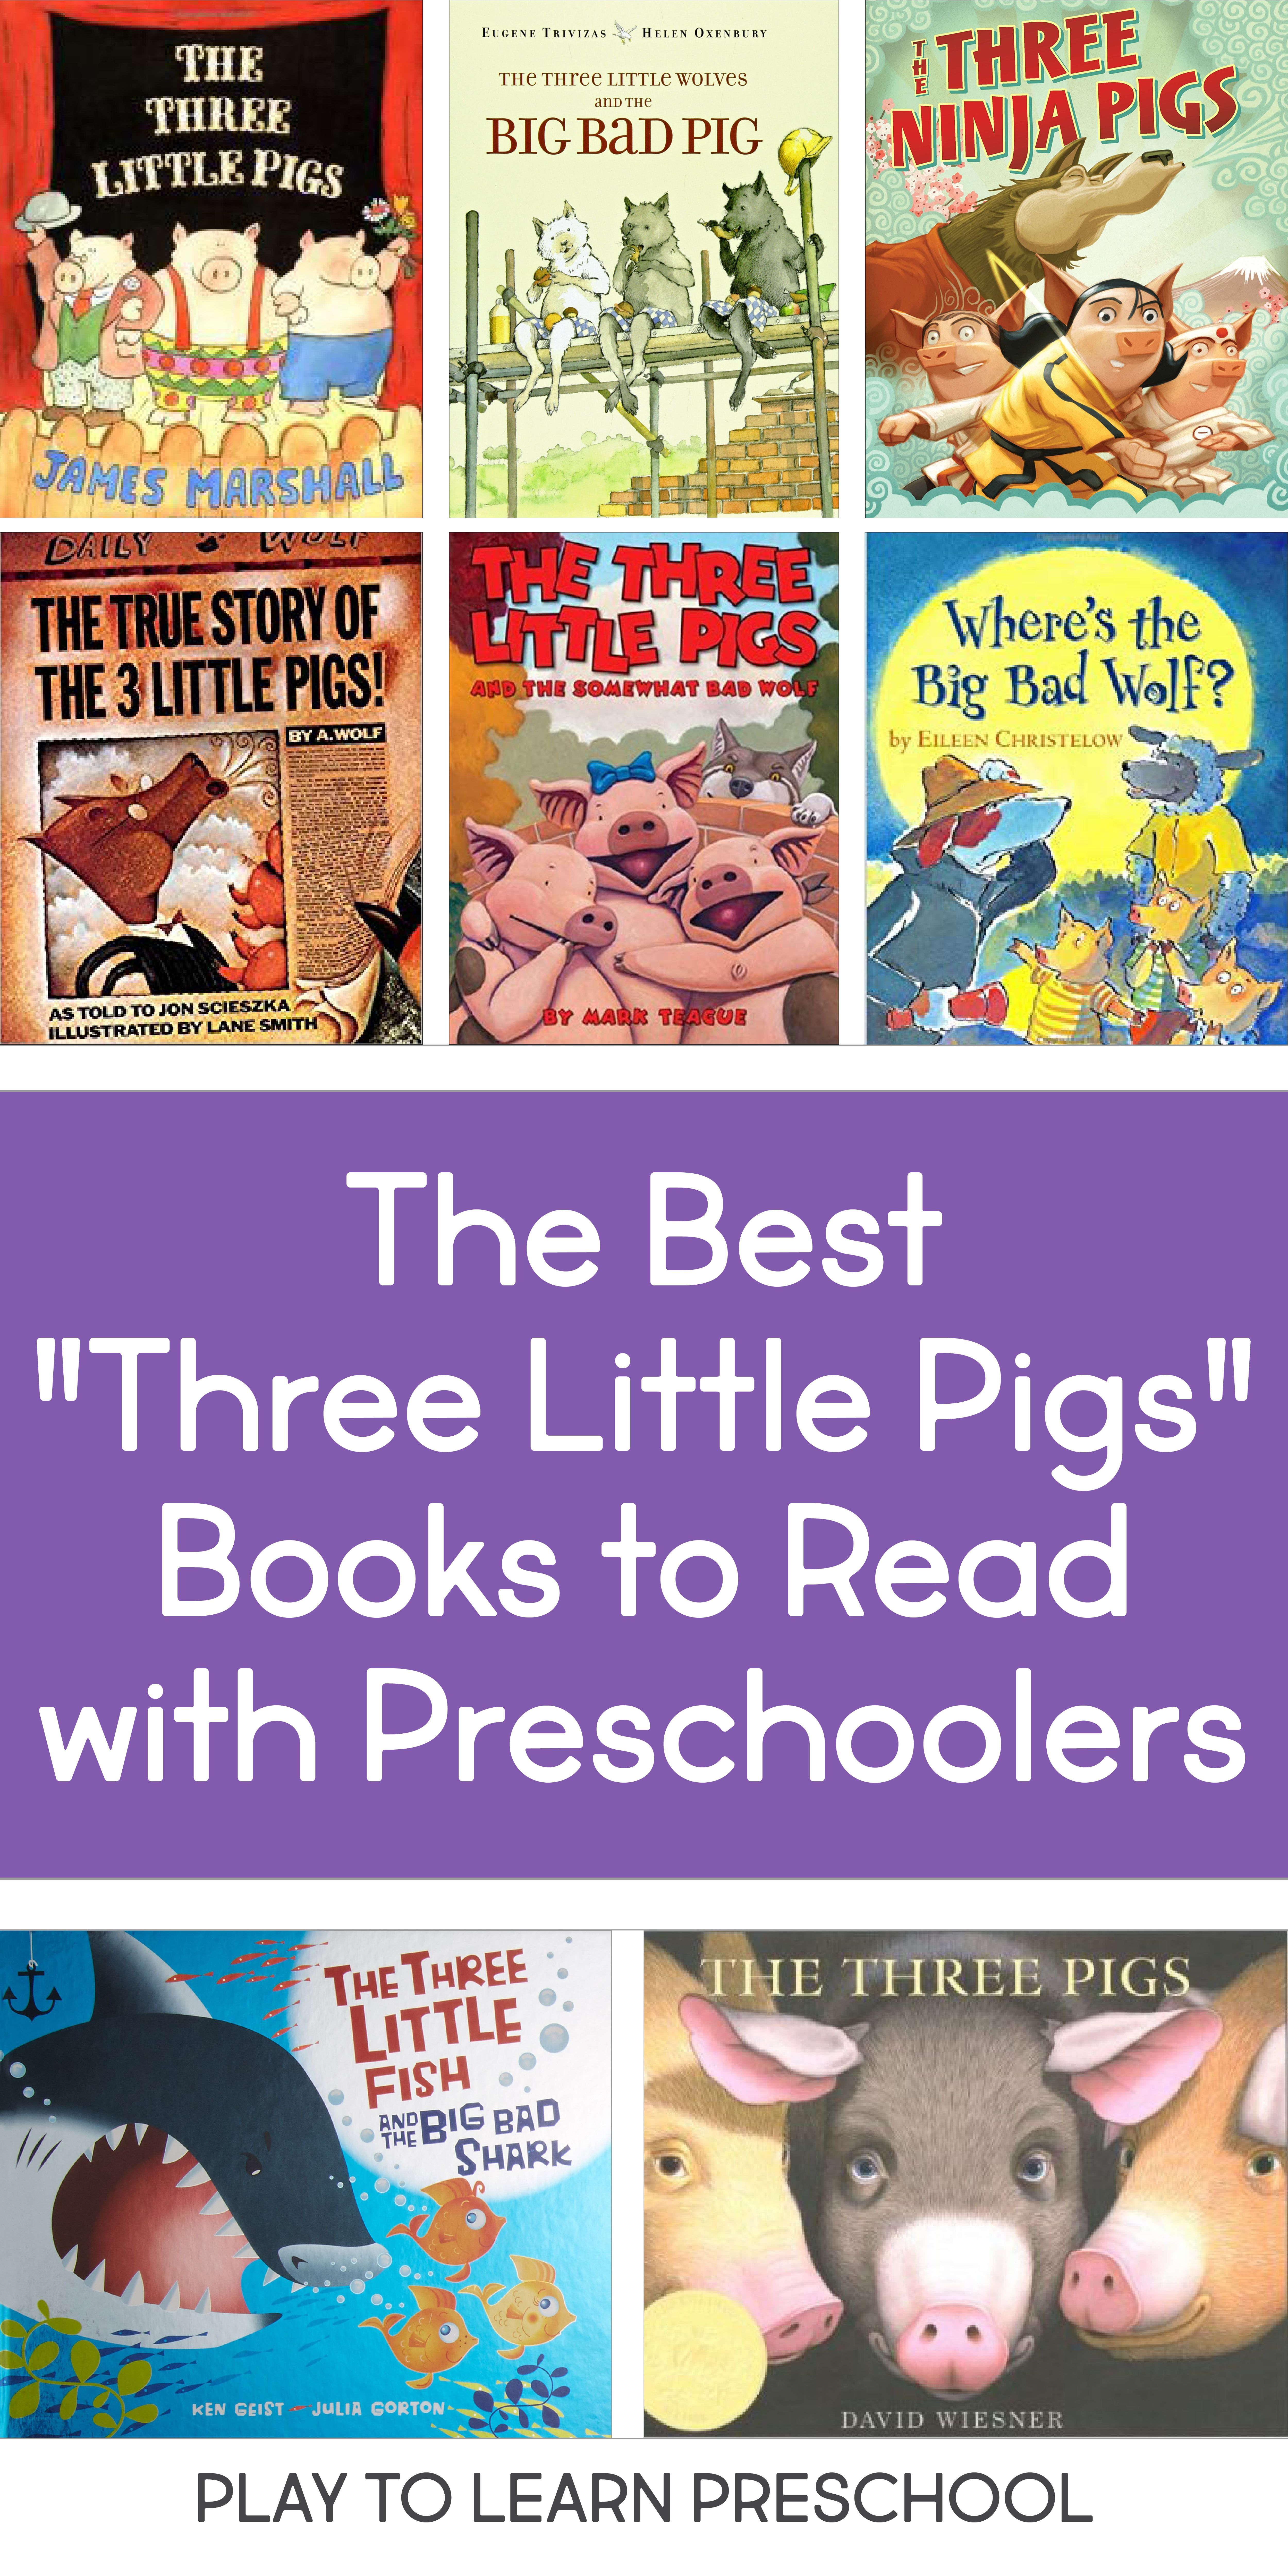 Preschoolers Love These Different Versions Of The Three